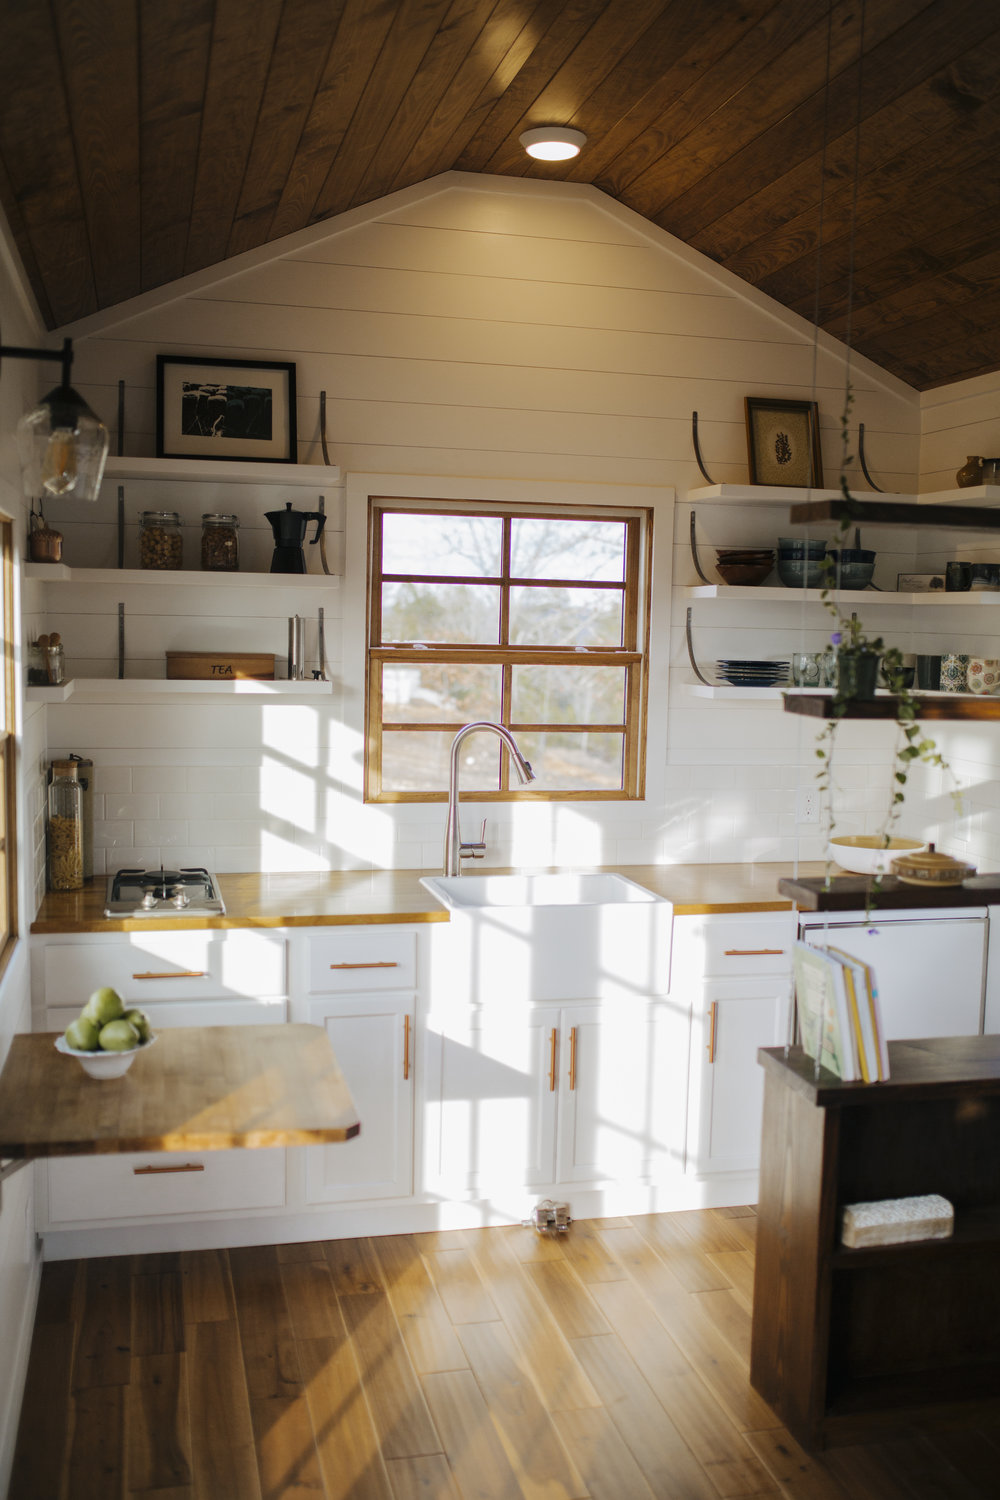 The Monocle by Wind River Tiny Homes - open shelving, fold down table, farmhouse sink, suspended cable shelving